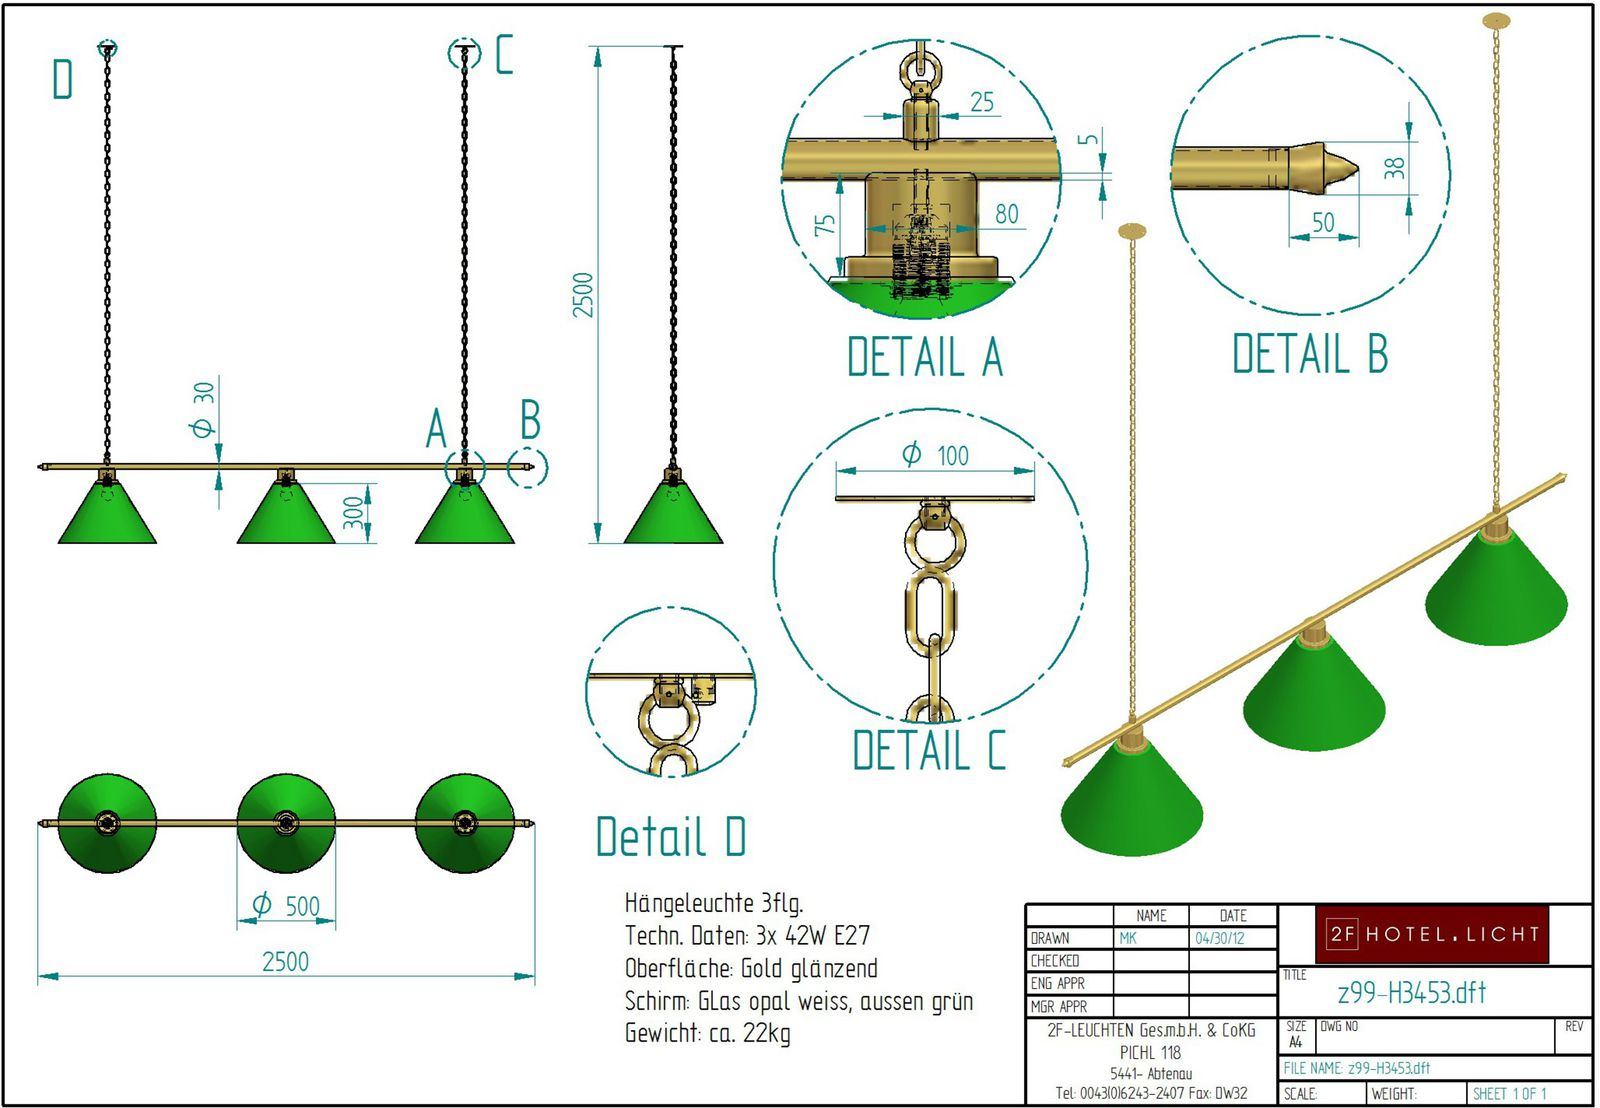 hanging lamp, lenght=2500mm, wide=500mm, height=2500mm, surface: polished gold, Glass green and white, techn. details: 3xE27, 42W